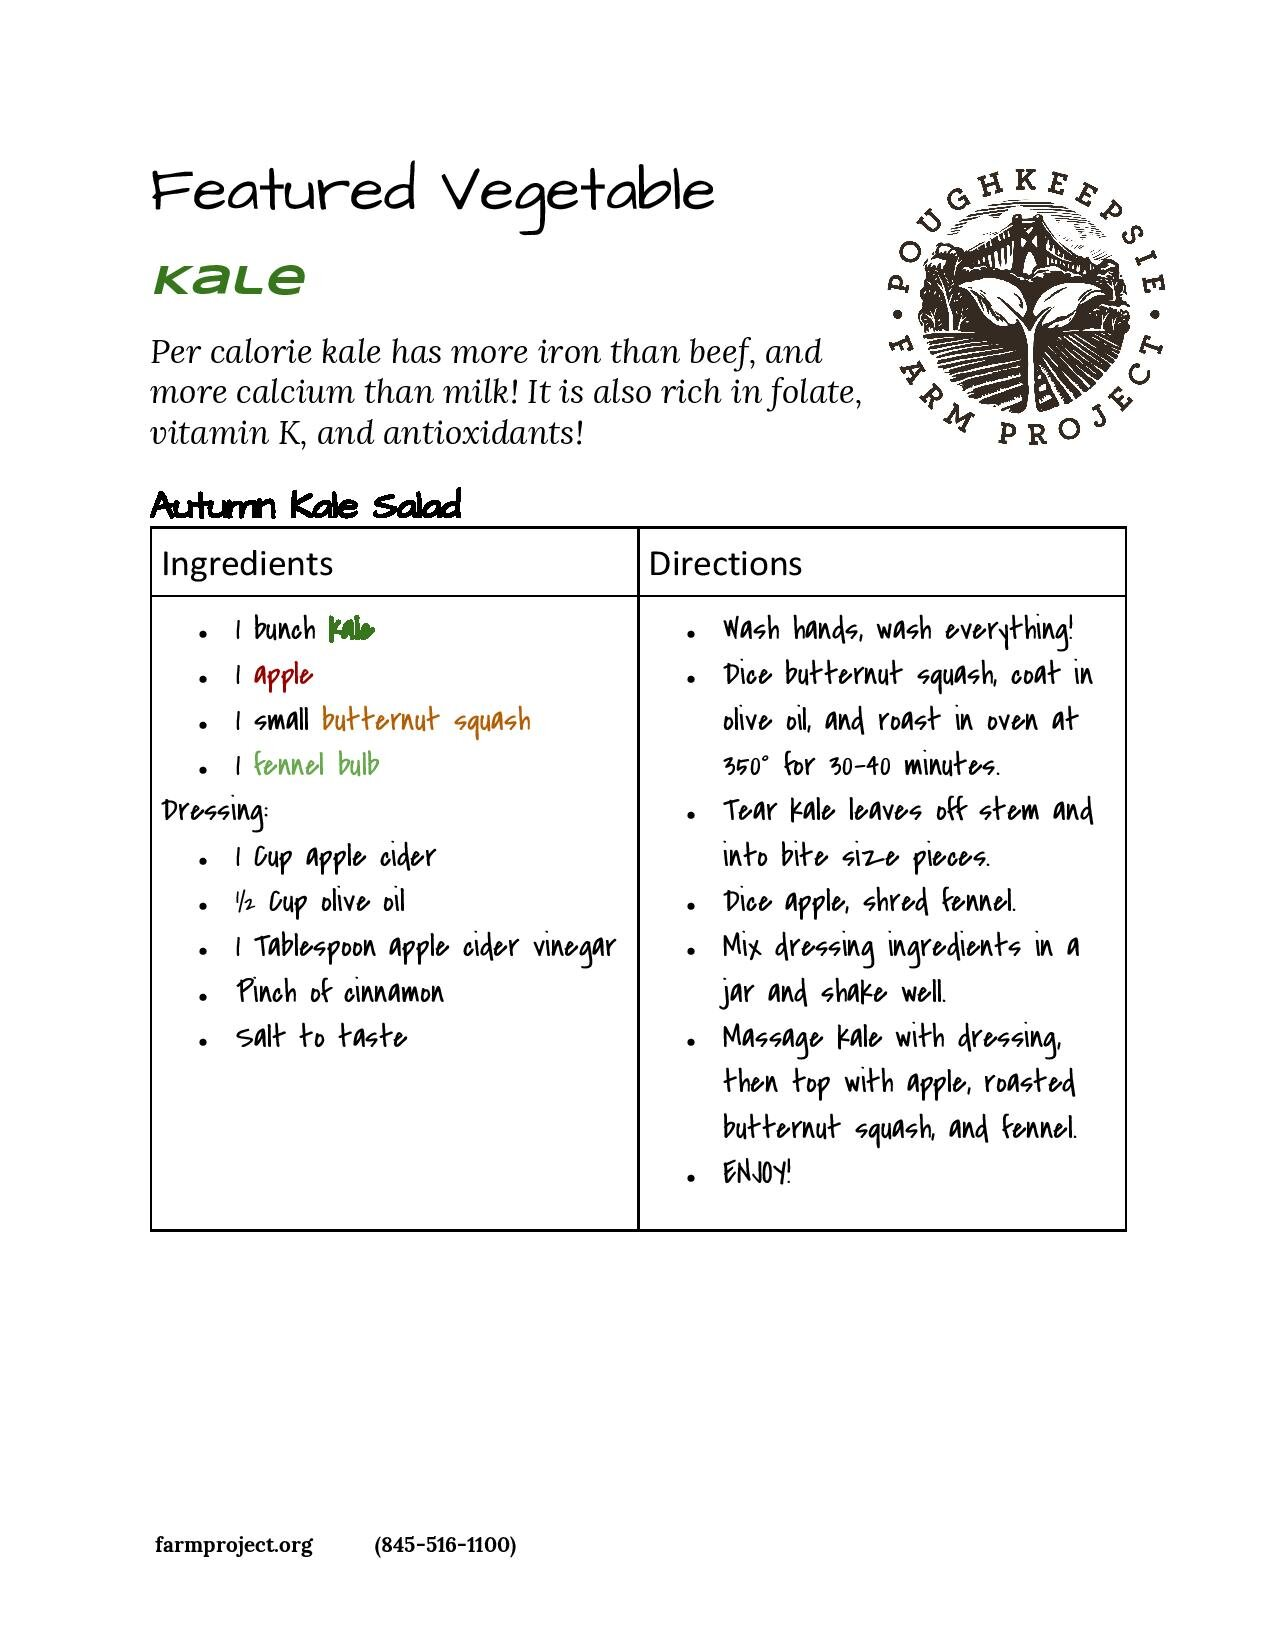 Autumn Kale Salad - Try out this autumn kale salad recipe - perfect for the end of the season as we head into winter. Combining this superfood with other favourite autumn produce like butternut squash and apples is just one of many ways we serve up kale salad here at the farm. Experiment with other fruit, nuts, beans and veggies to find your favorite combo!